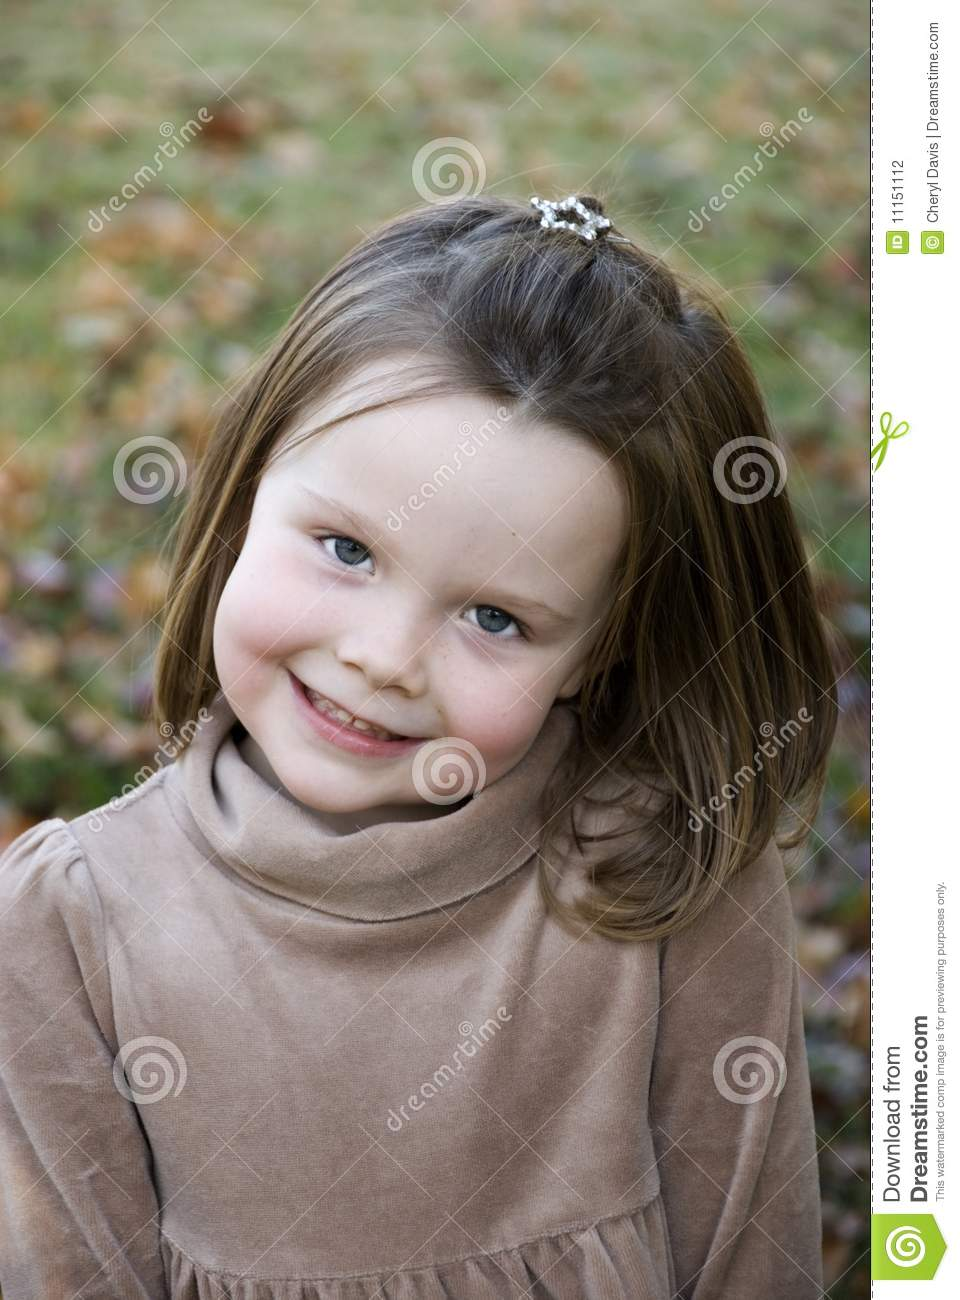 Adorable Little Girl Big Smile Bright Eyes Royalty Free